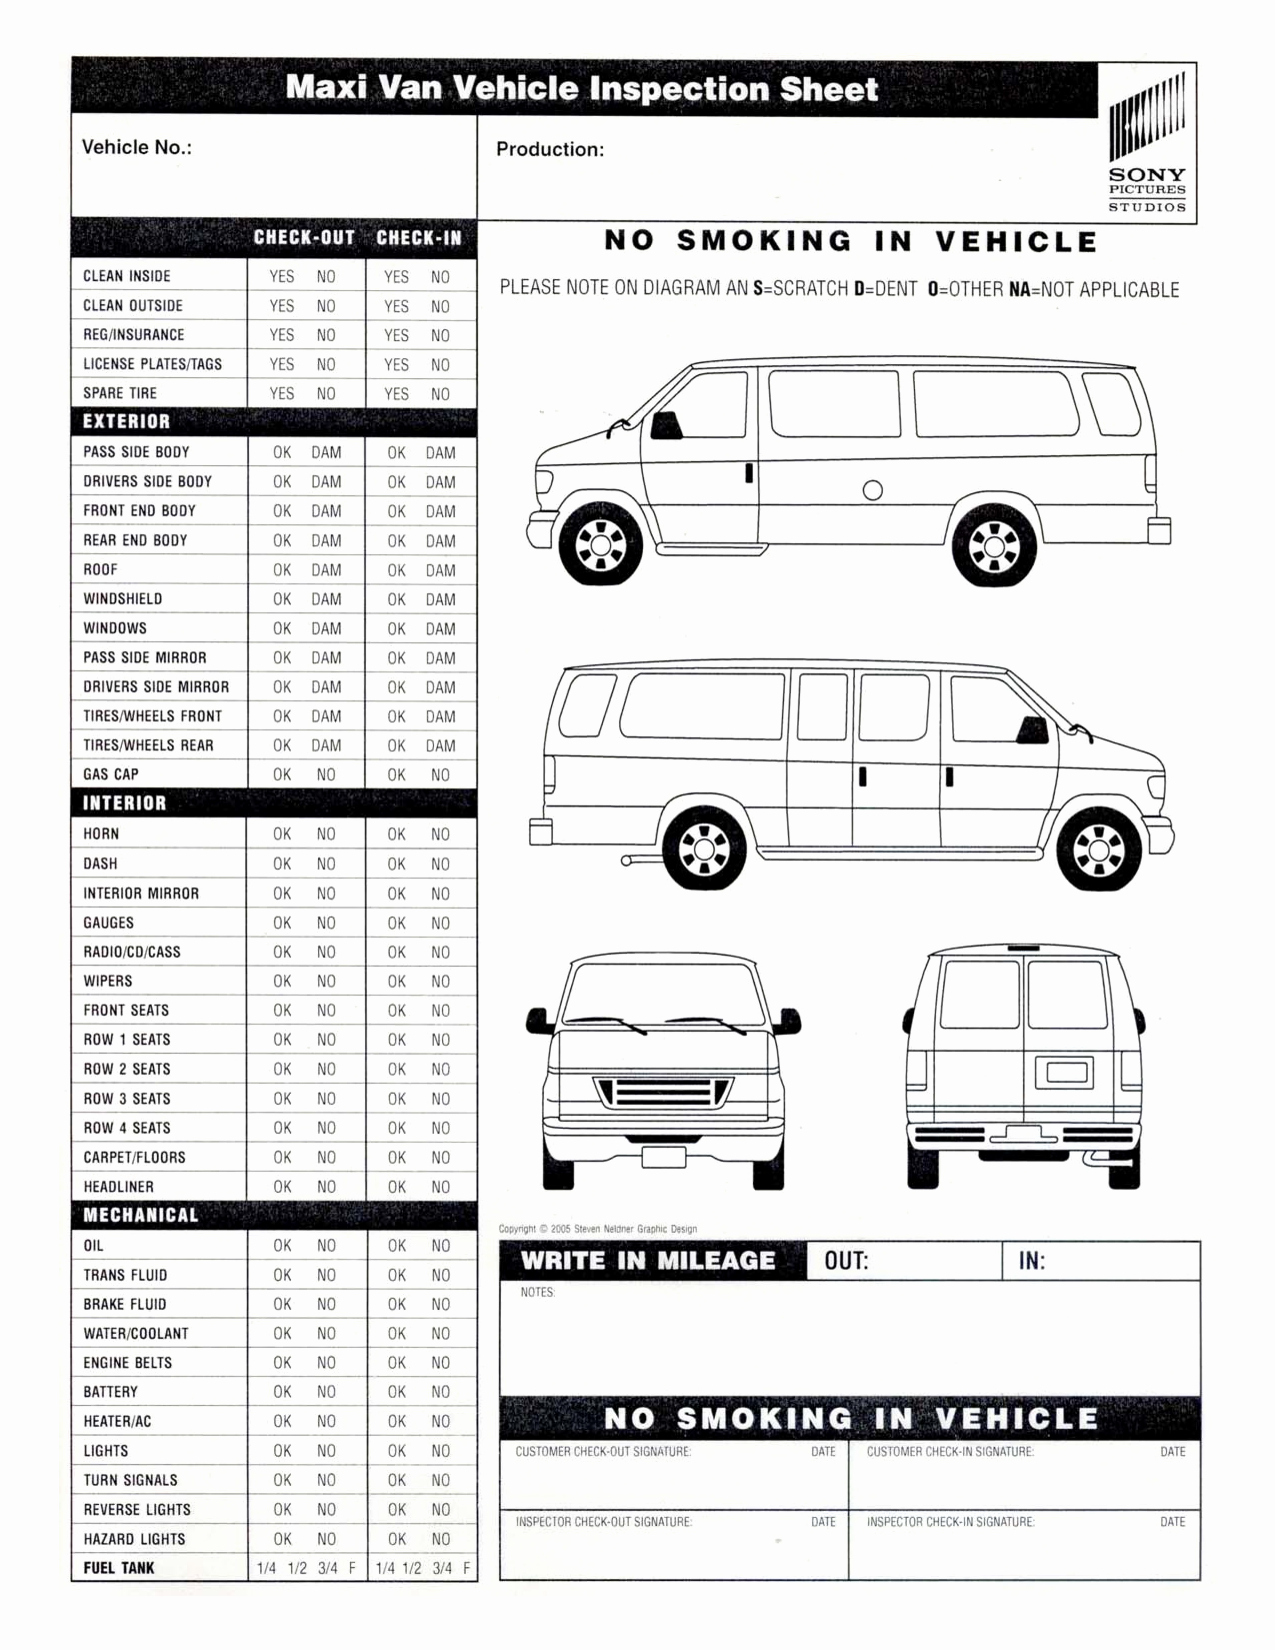 Vehicle Inspection Report Template Luxury 9 Best Of Van Diagram Template Gmc Van Outline